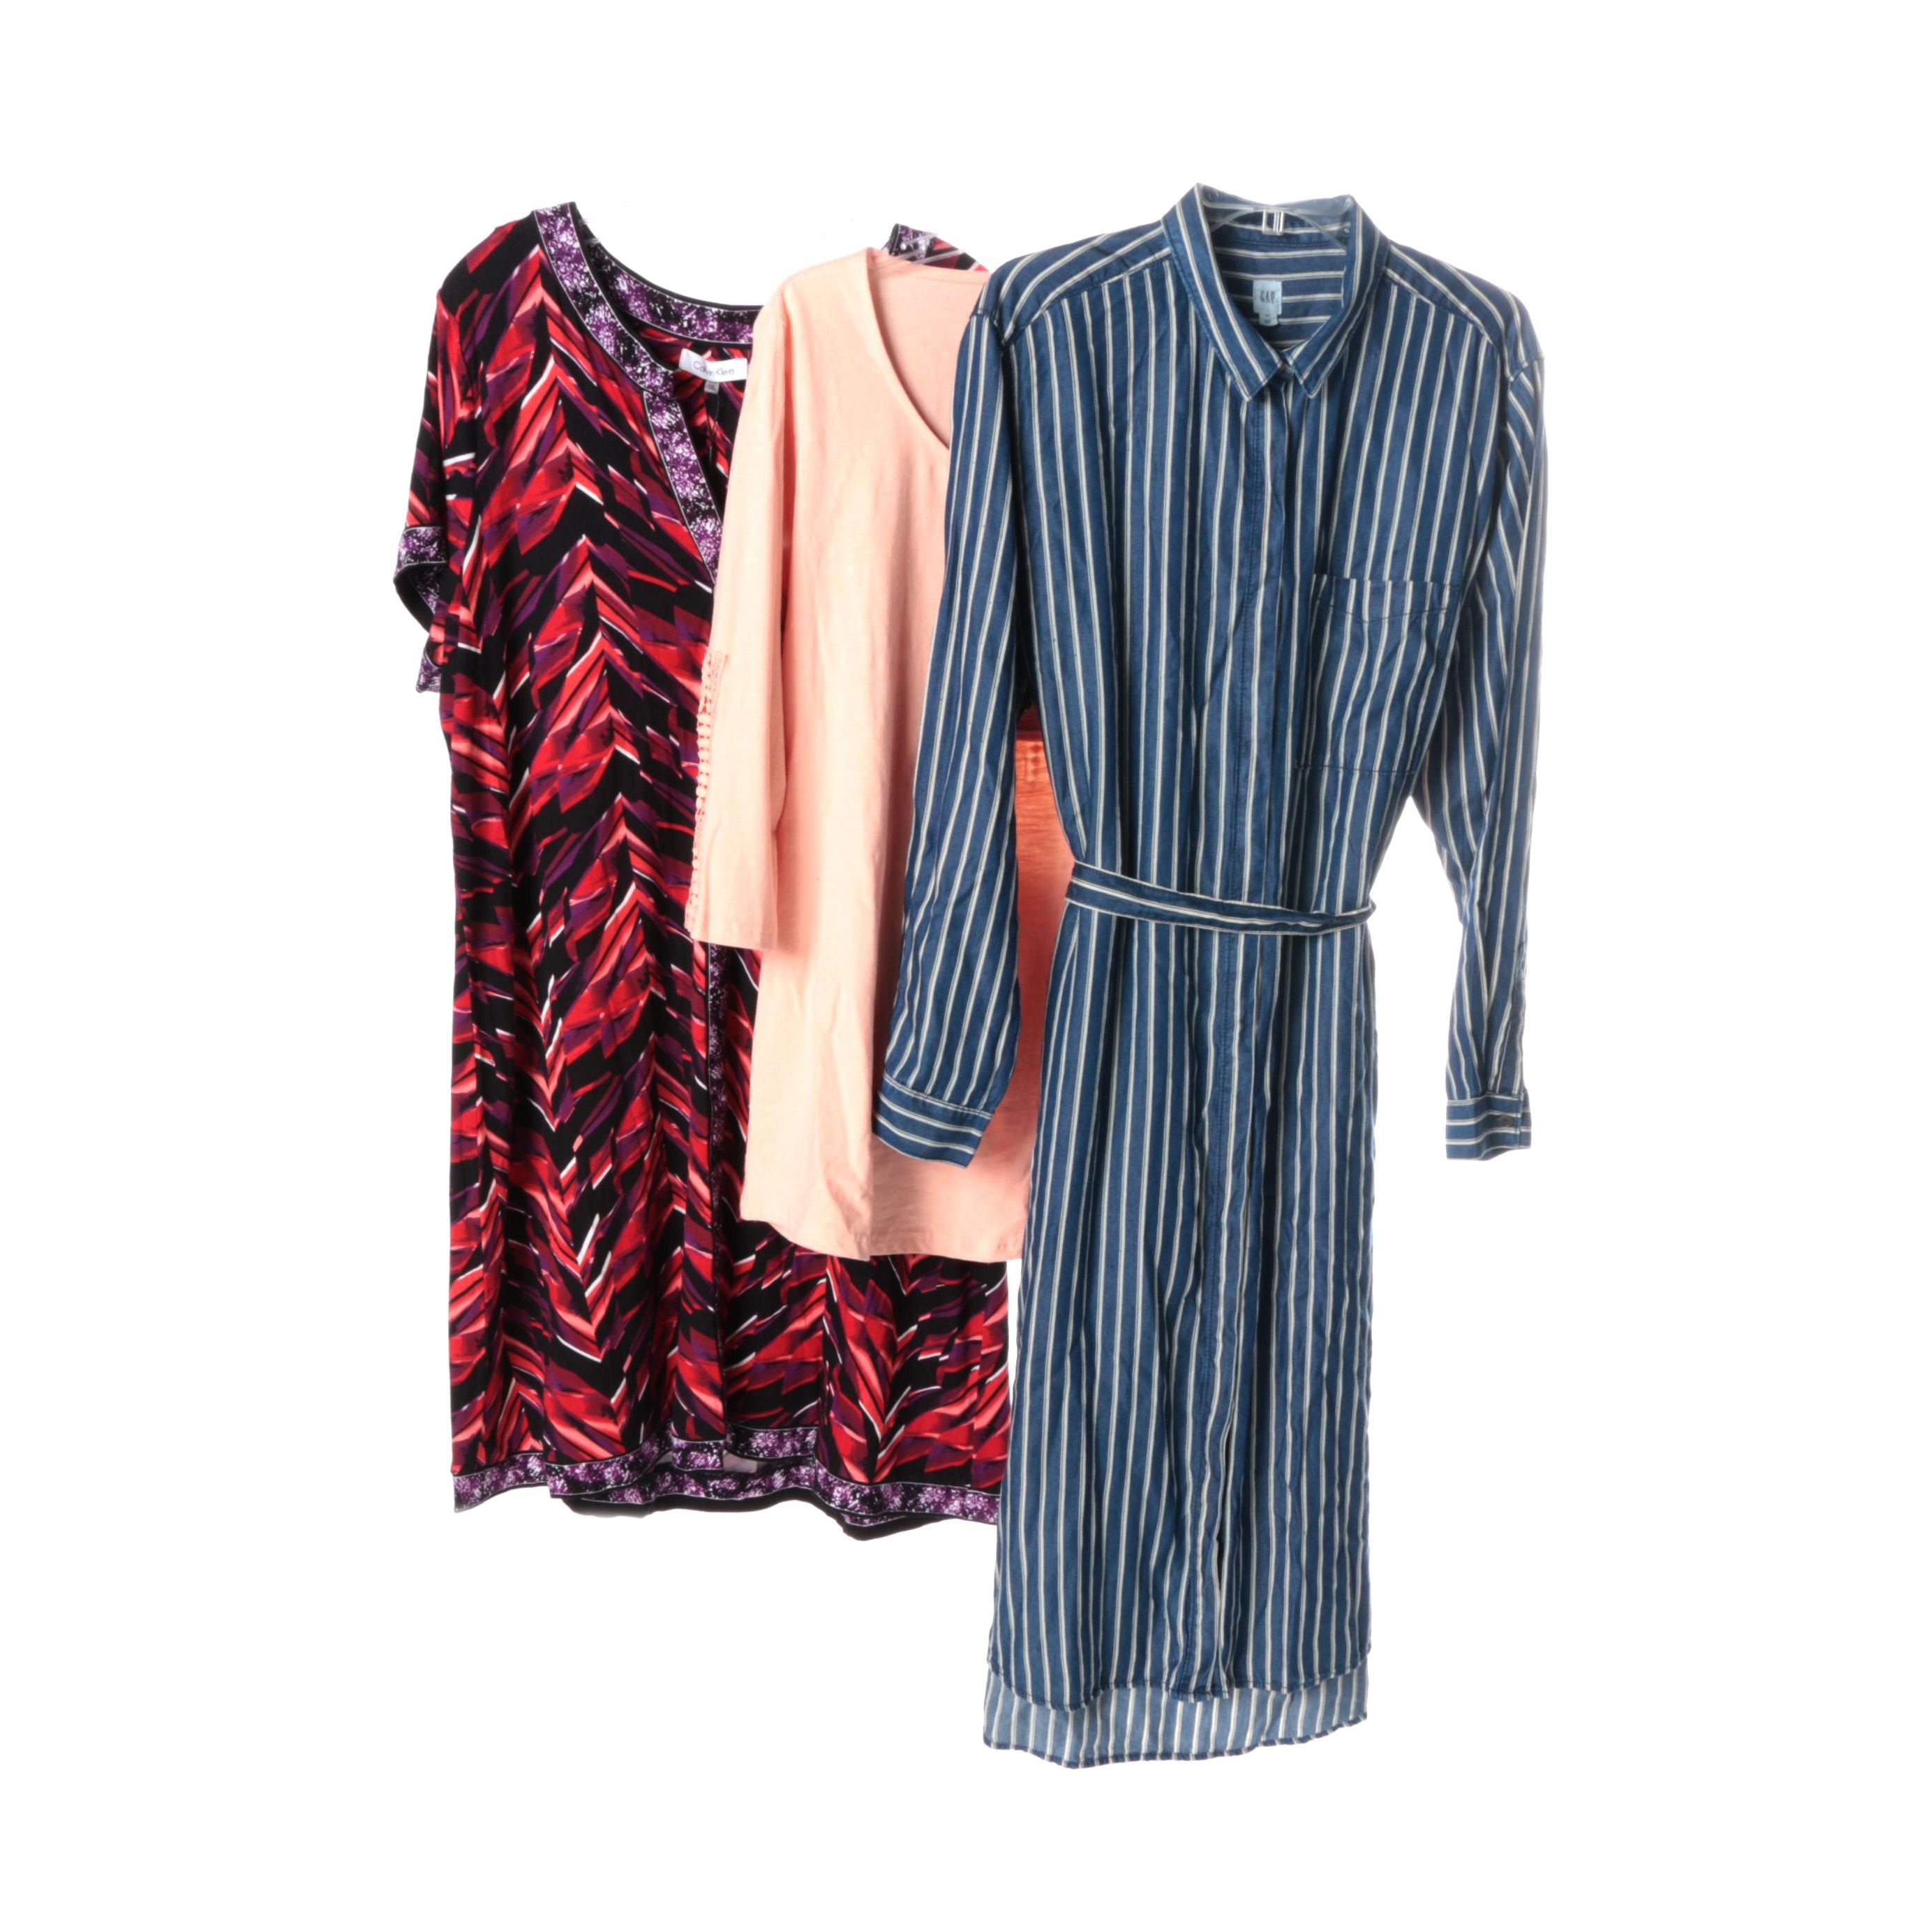 Women's Casual Clothing Including Calvin Klein and Gap